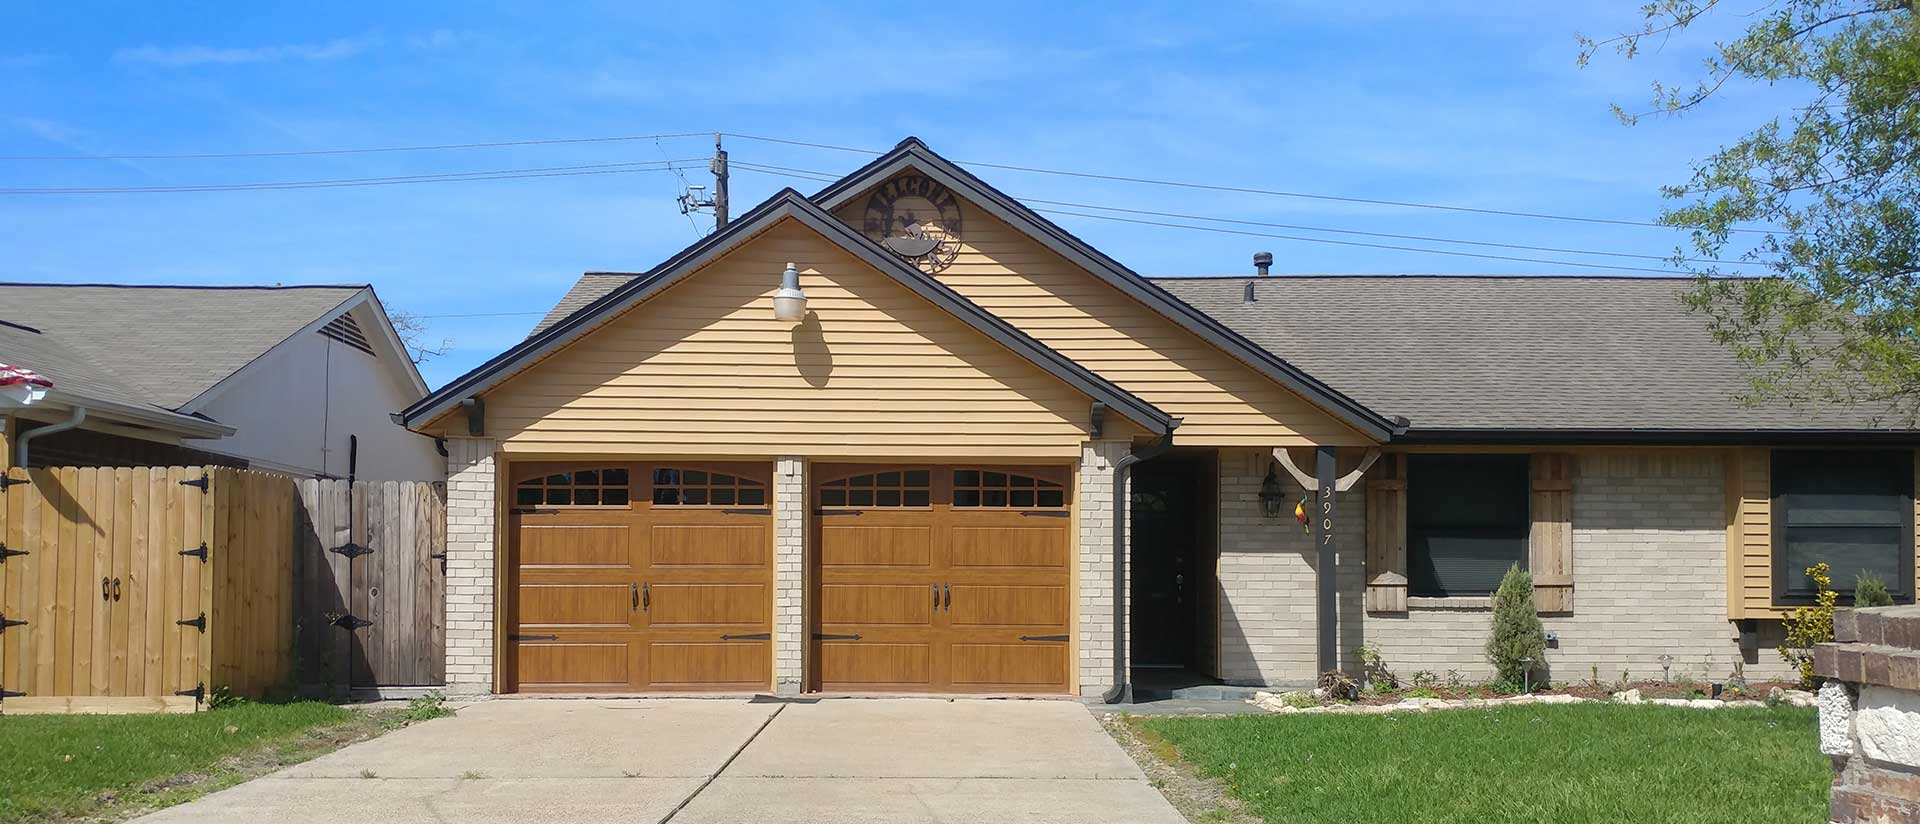 Affinity Garage Door Solutions LLC - garage door repairs and installations